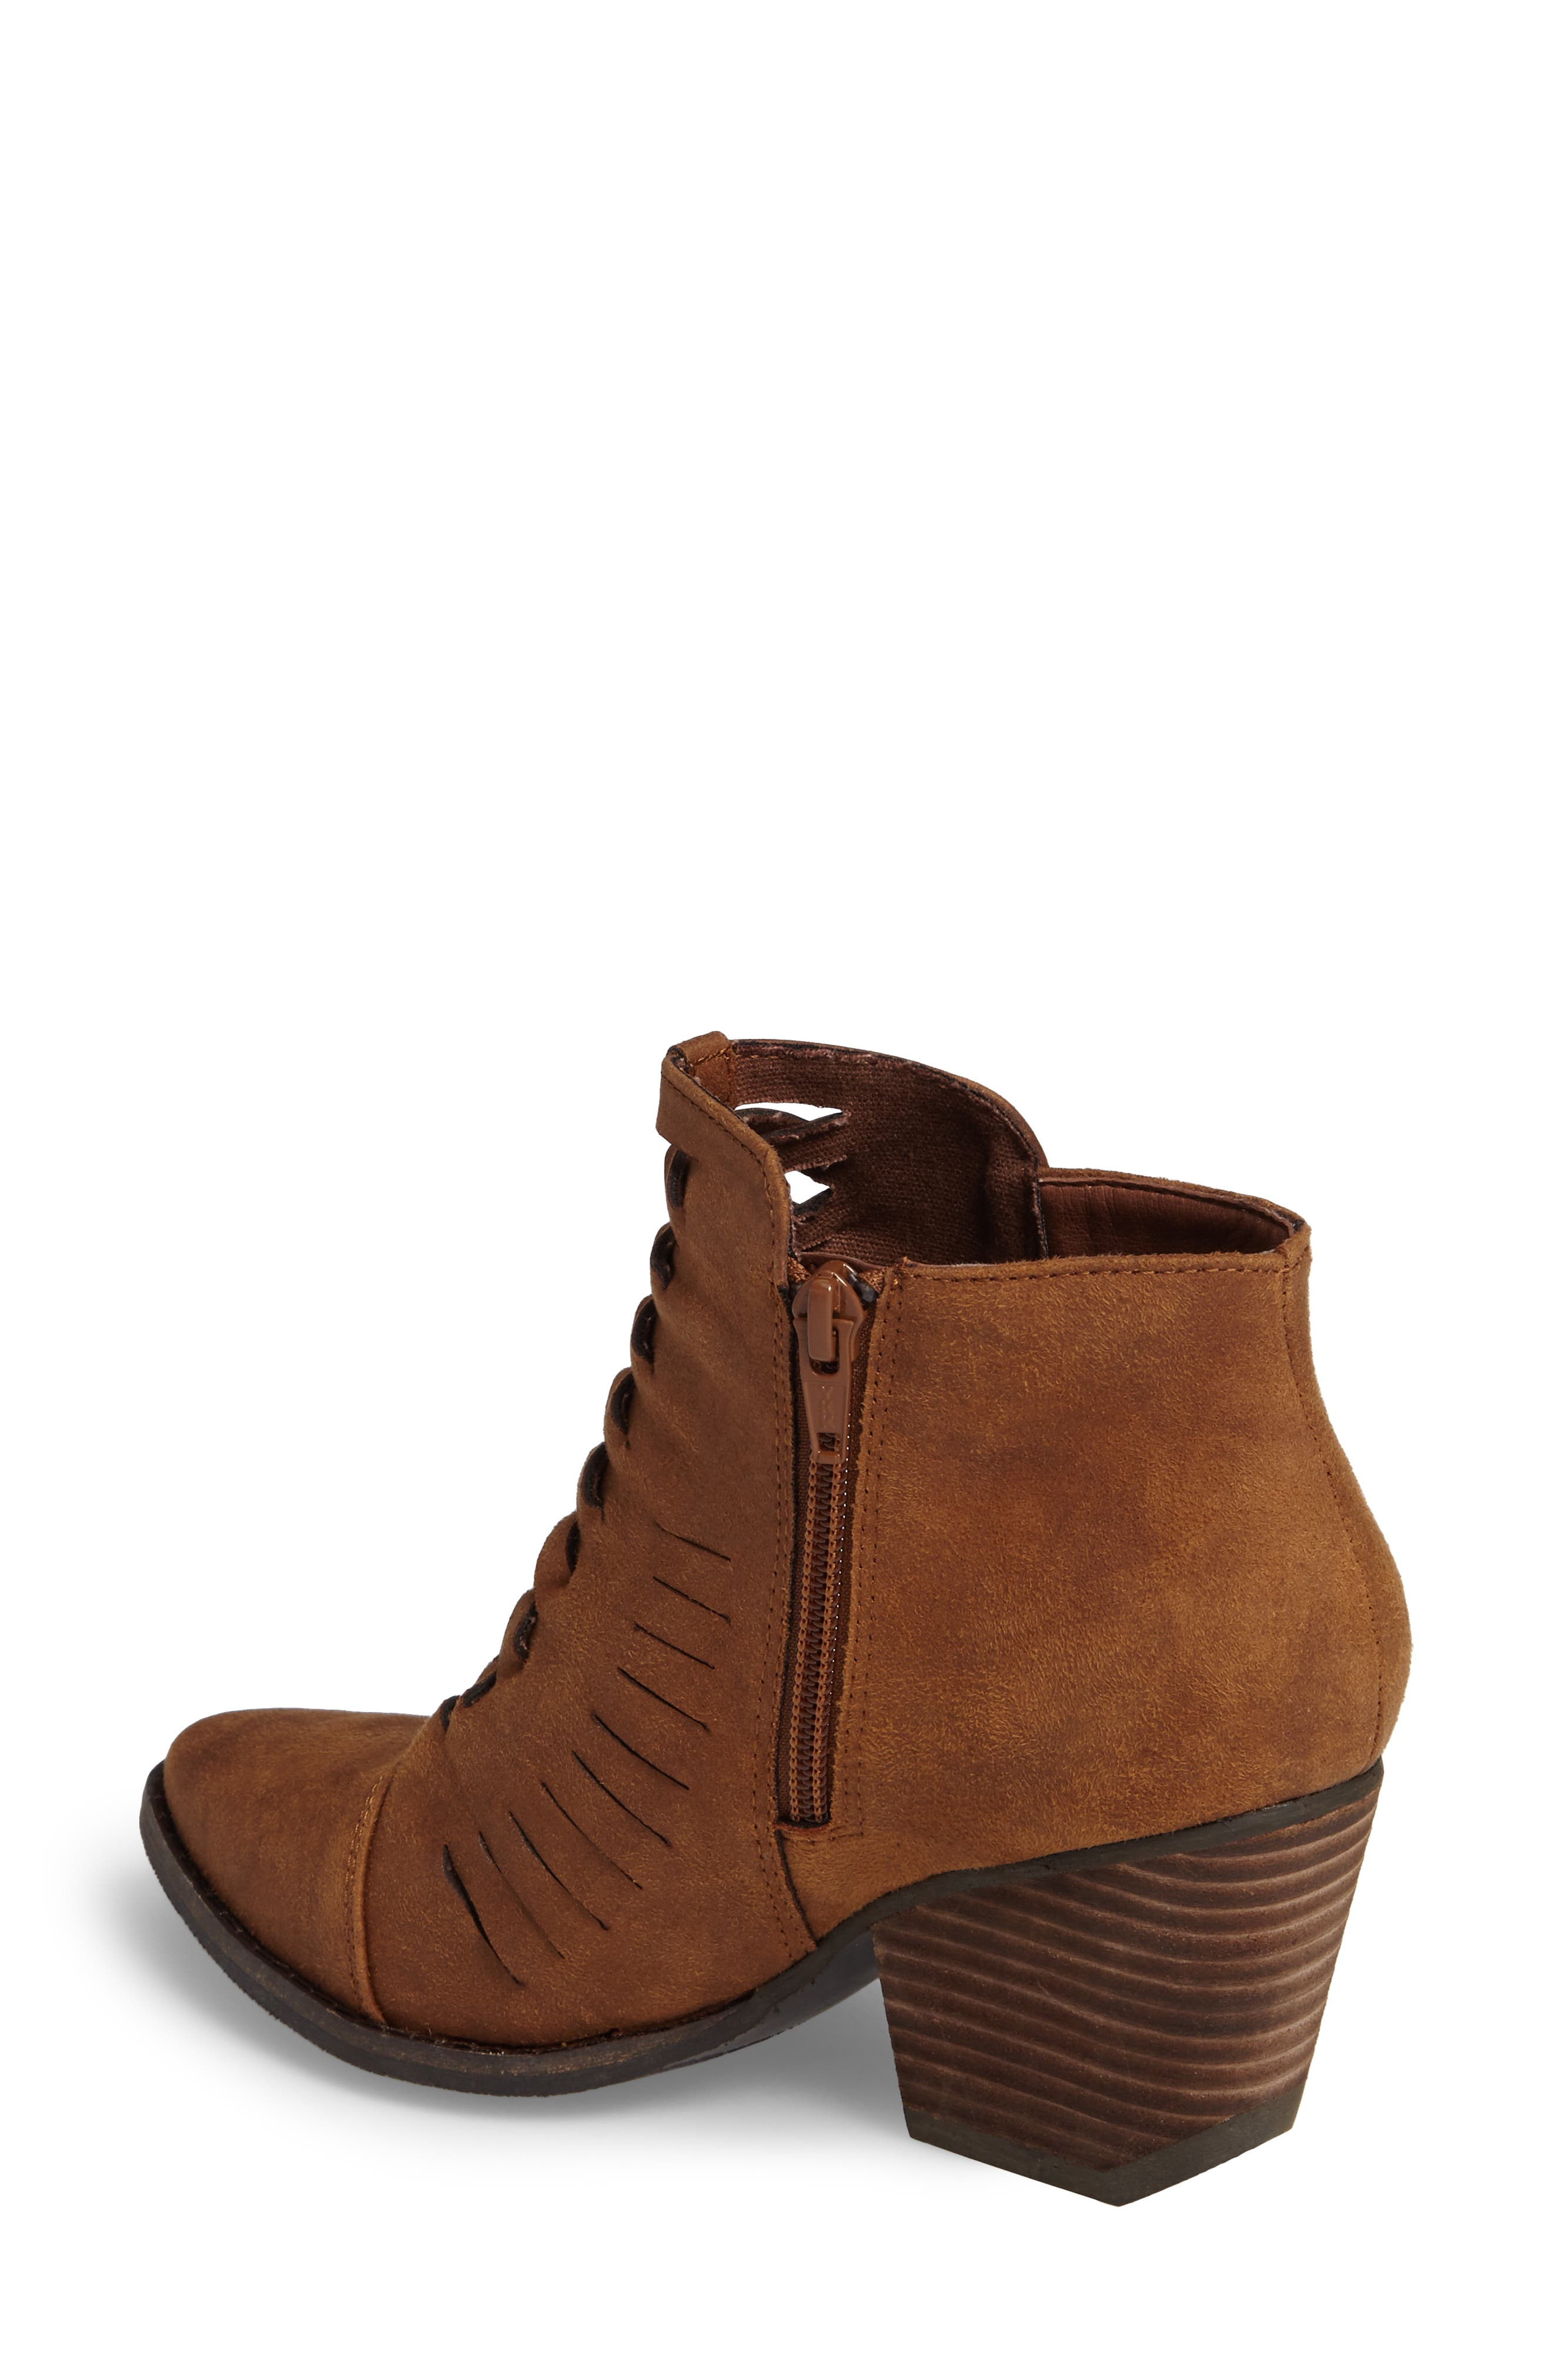 Ally Woven Bootie,                             Alternate thumbnail 6, color,